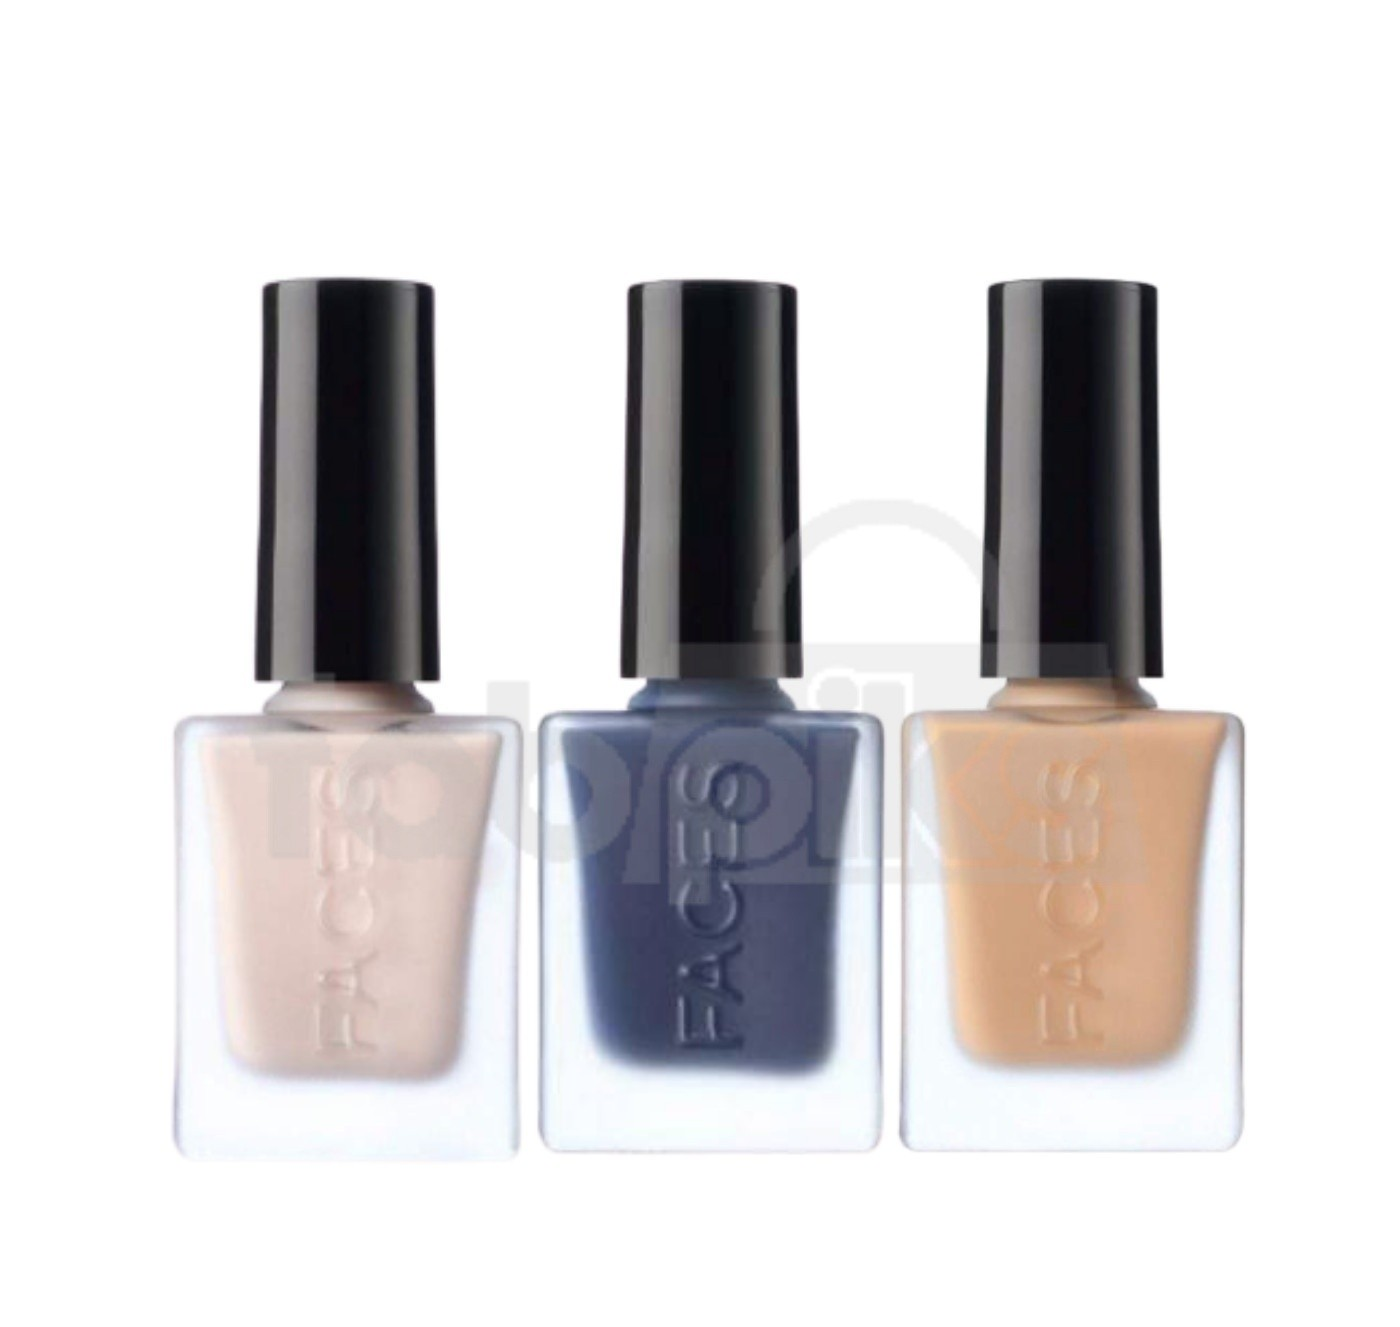 Matte Nail Enamel - Assorted Shades set of 3  | MRP Rs. 825